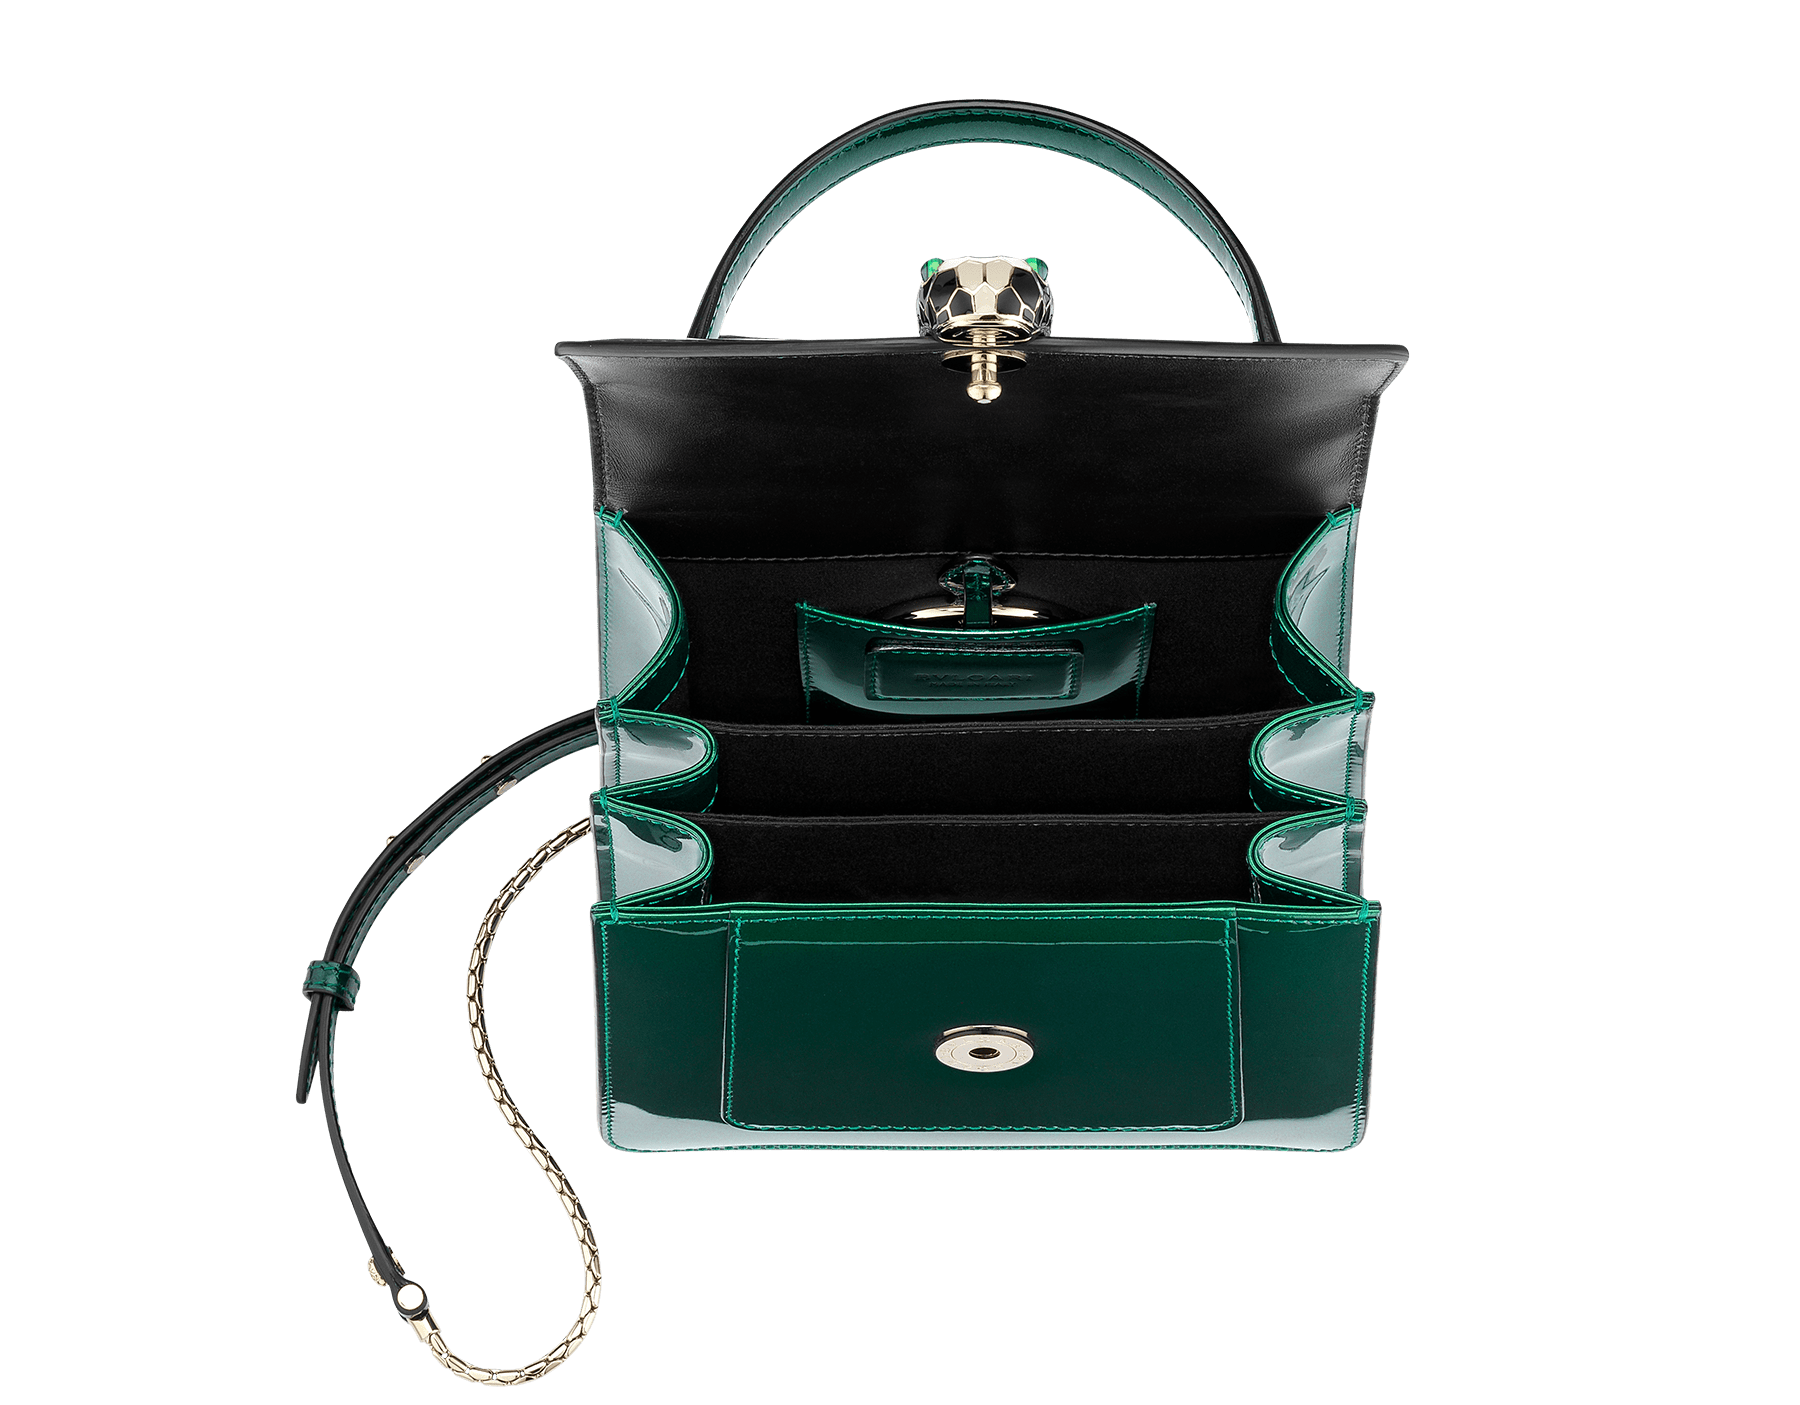 Flap cover bag Serpenti Forever in forest emerald brushed metallic calf leather. Brass light gold plated hardware and snake head closure in black and white enamel with eyes in green malachite. 752-BMCLb image 2